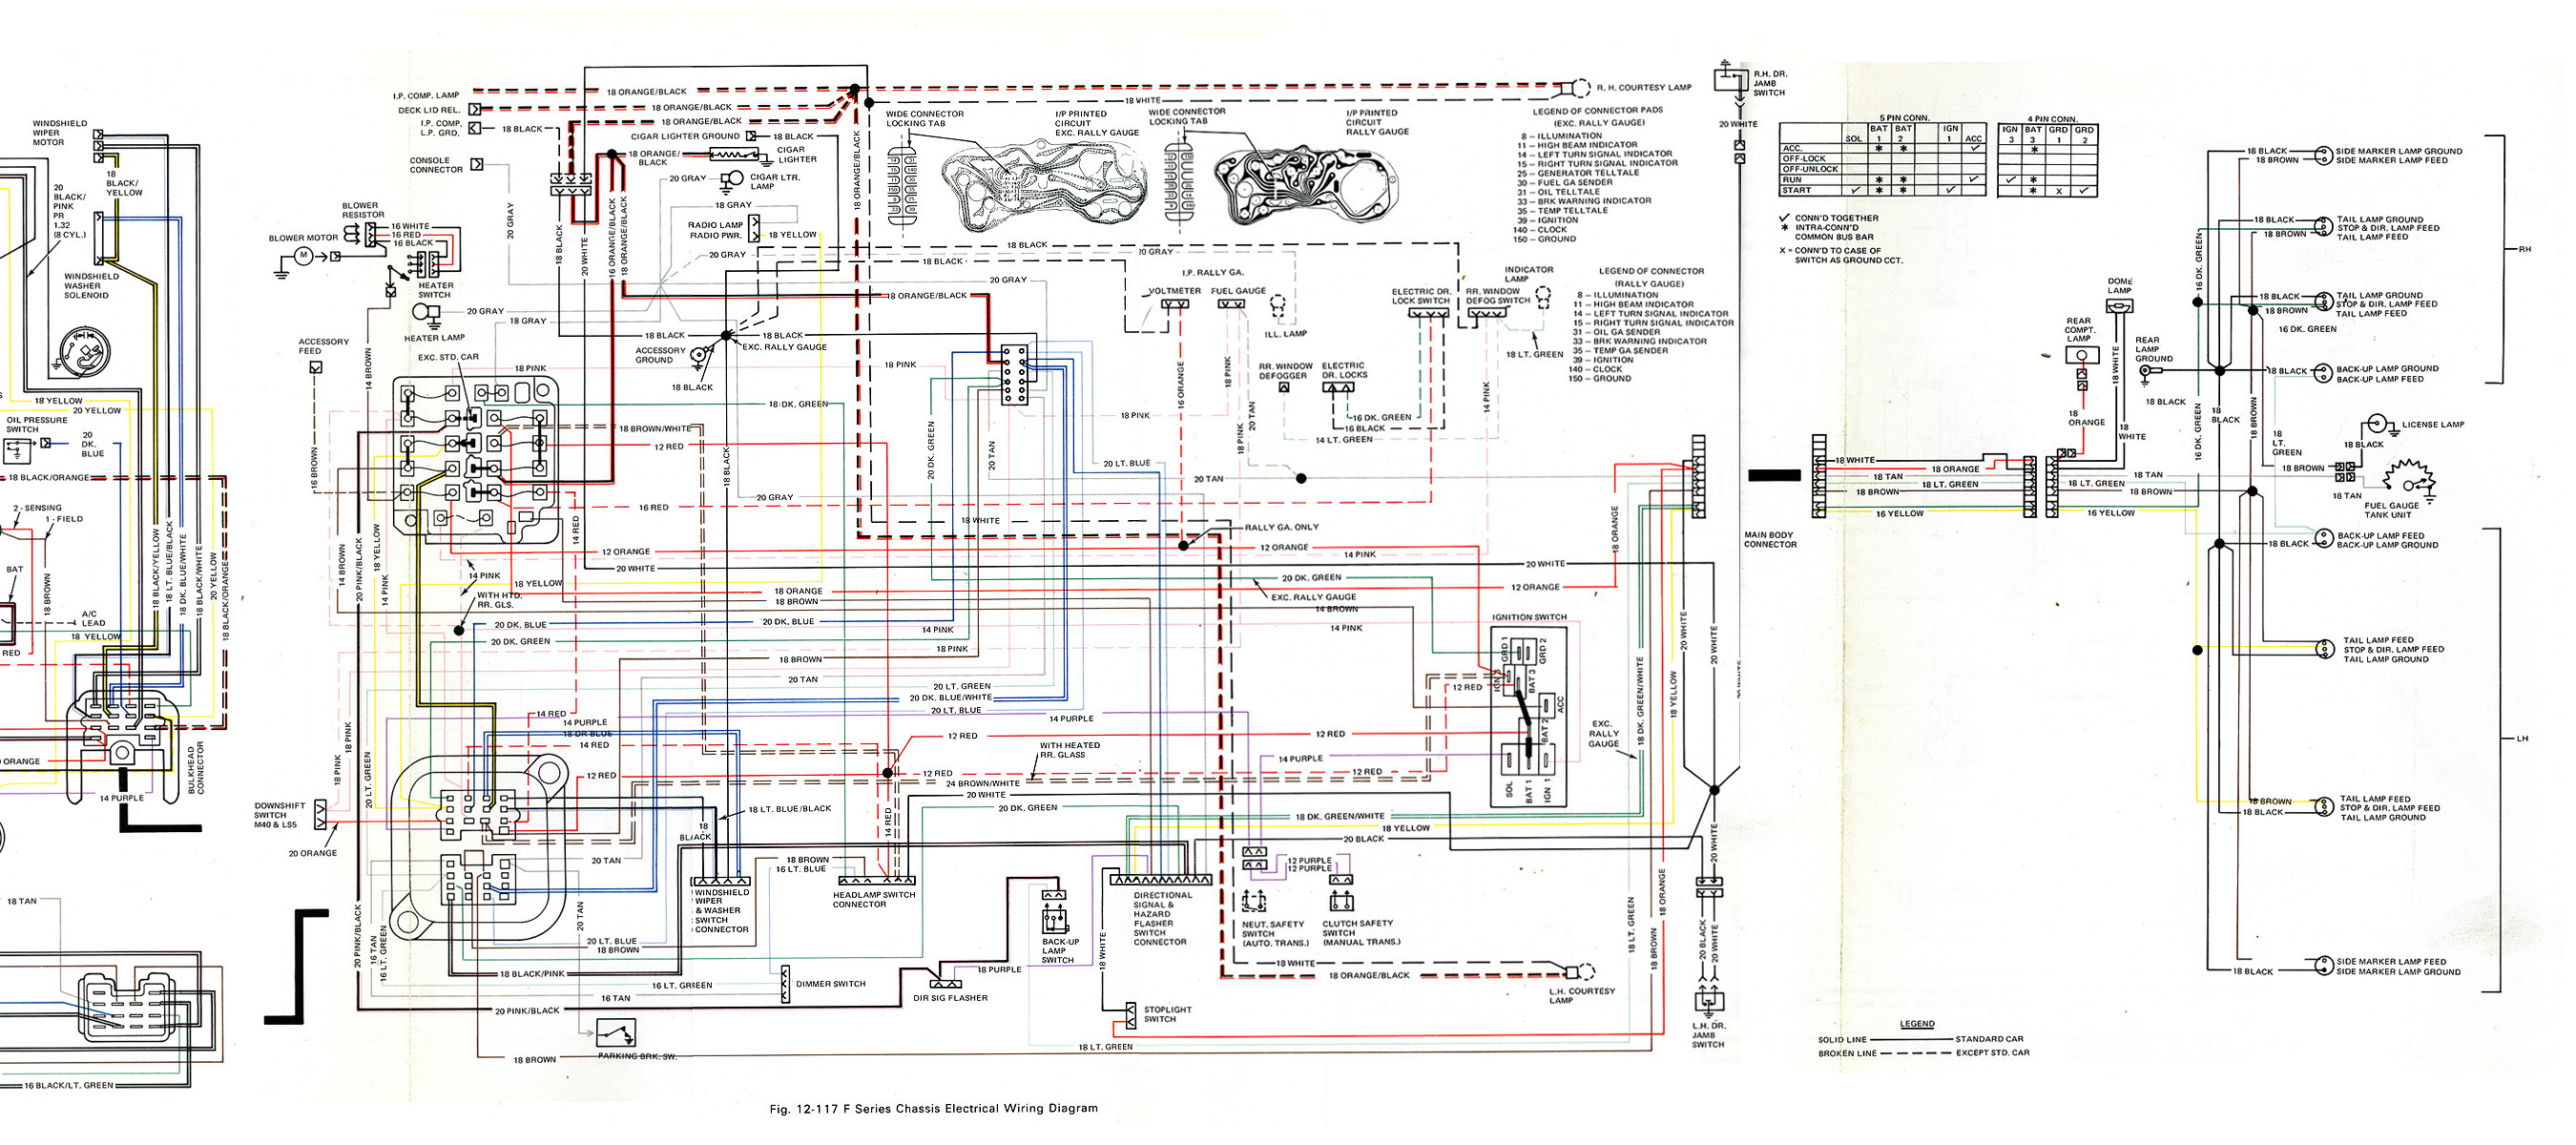 1973 Pontiac Firebird Wiring Diagram Circuit Wiring And Diagram Hub \u2022  1976 Trans AM Wiring Harness Diagram 1979 Firebird Wiring Diagram